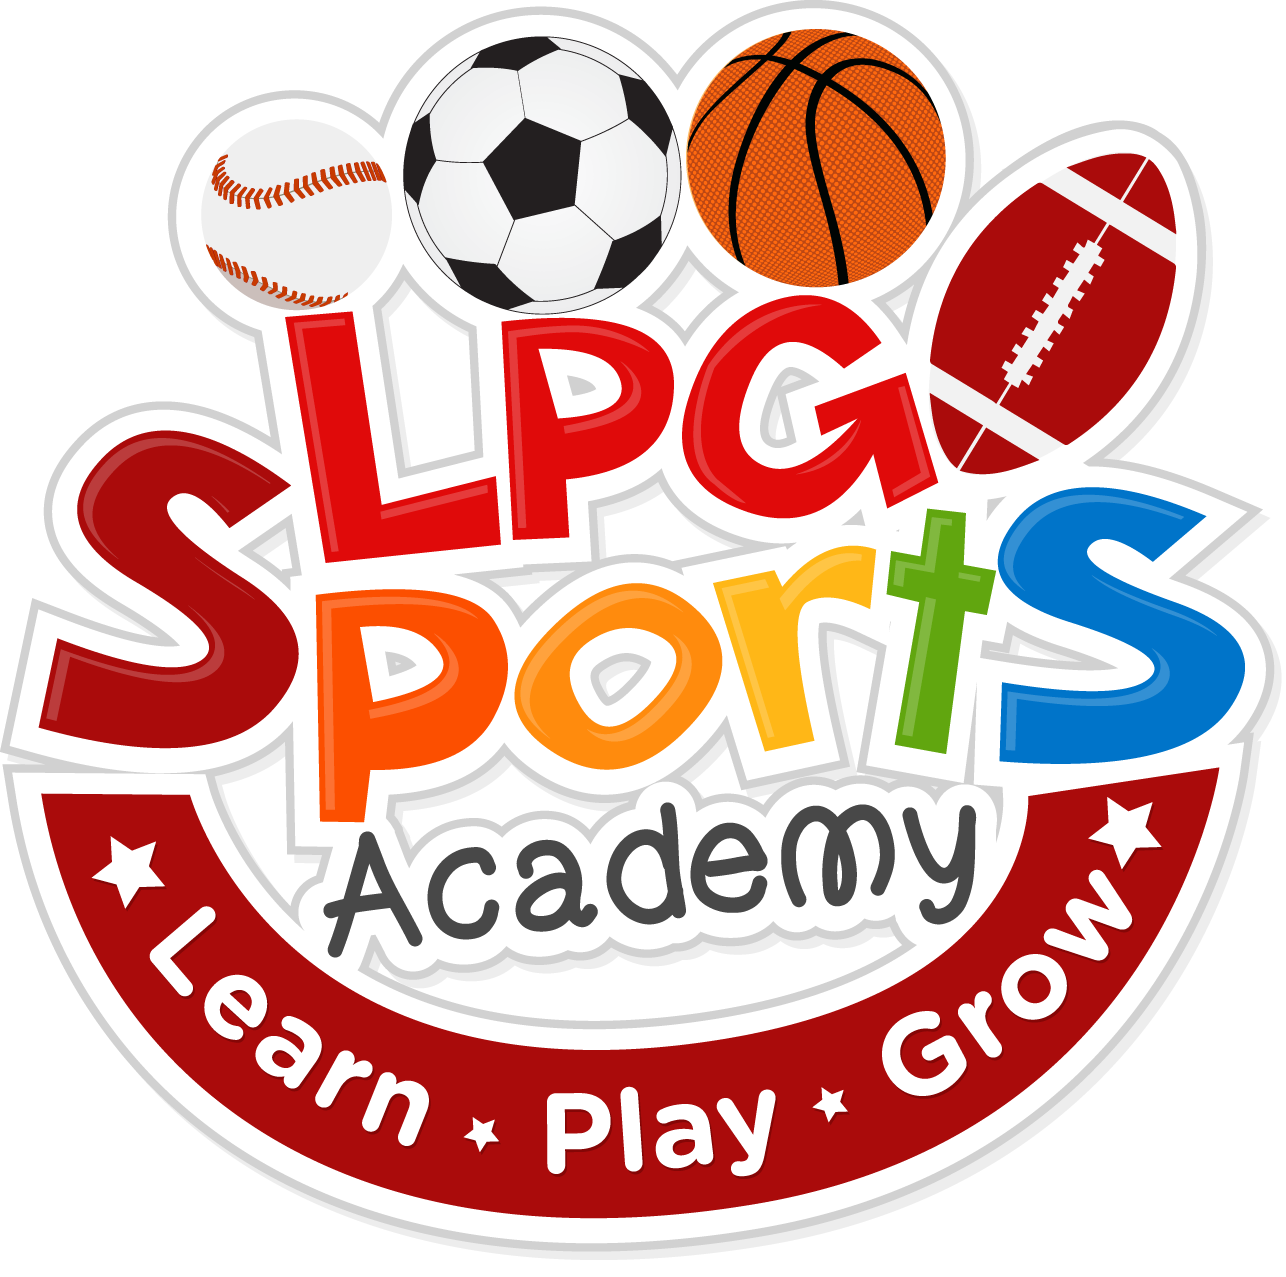 sports academy lpg football homeschool franklin introducing demo class nashville register soccer friday sport association hours